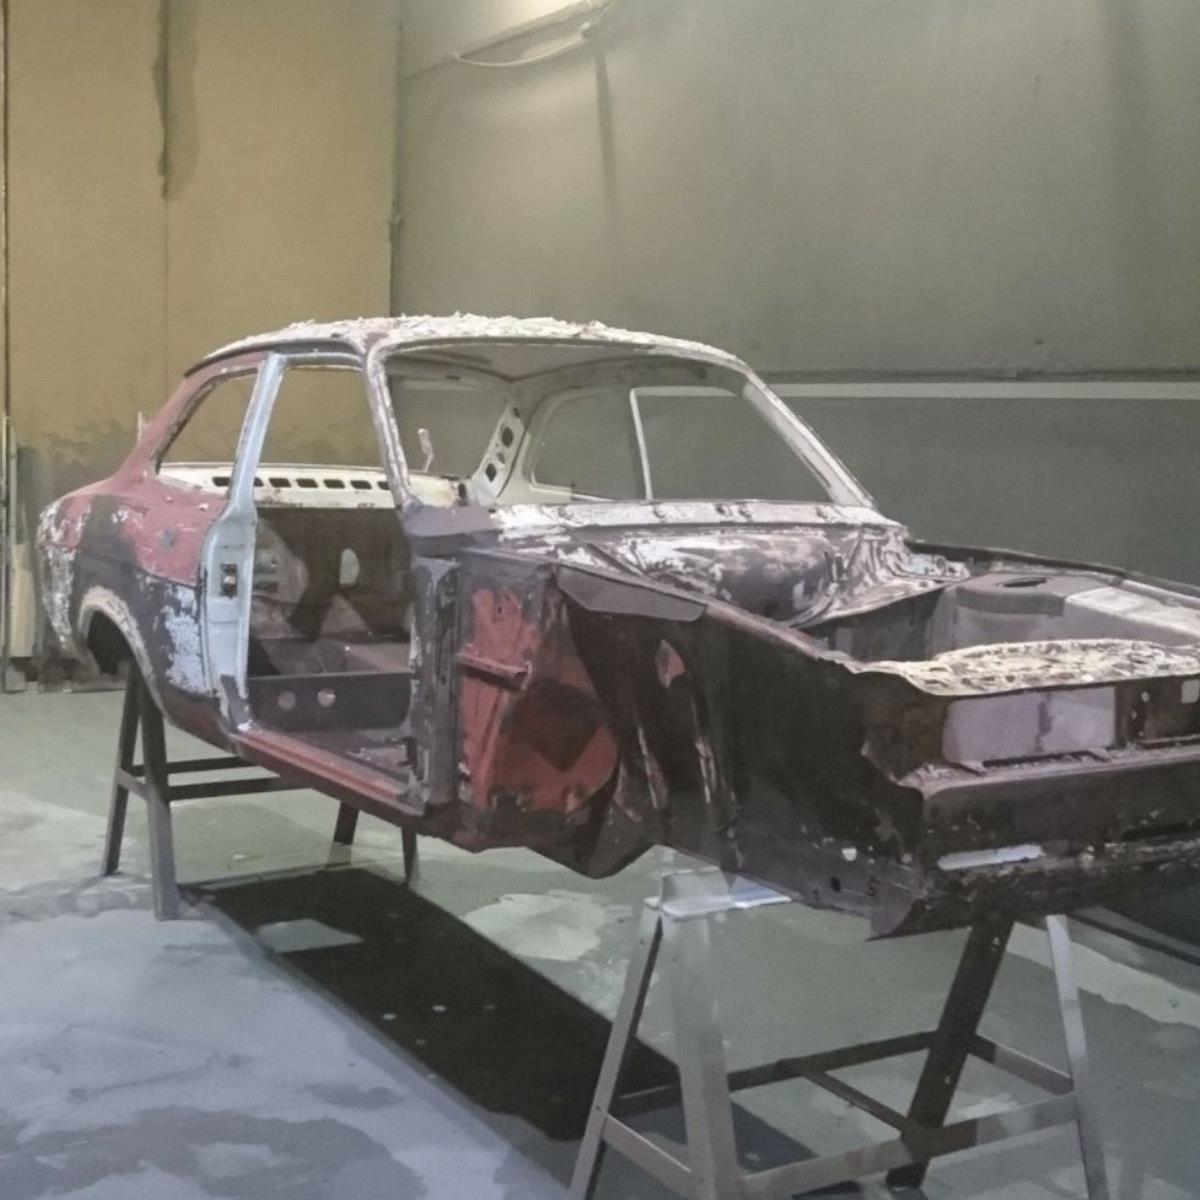 Aluminium oxide blasting is ideal for vehicle bodywork preparation following burn off